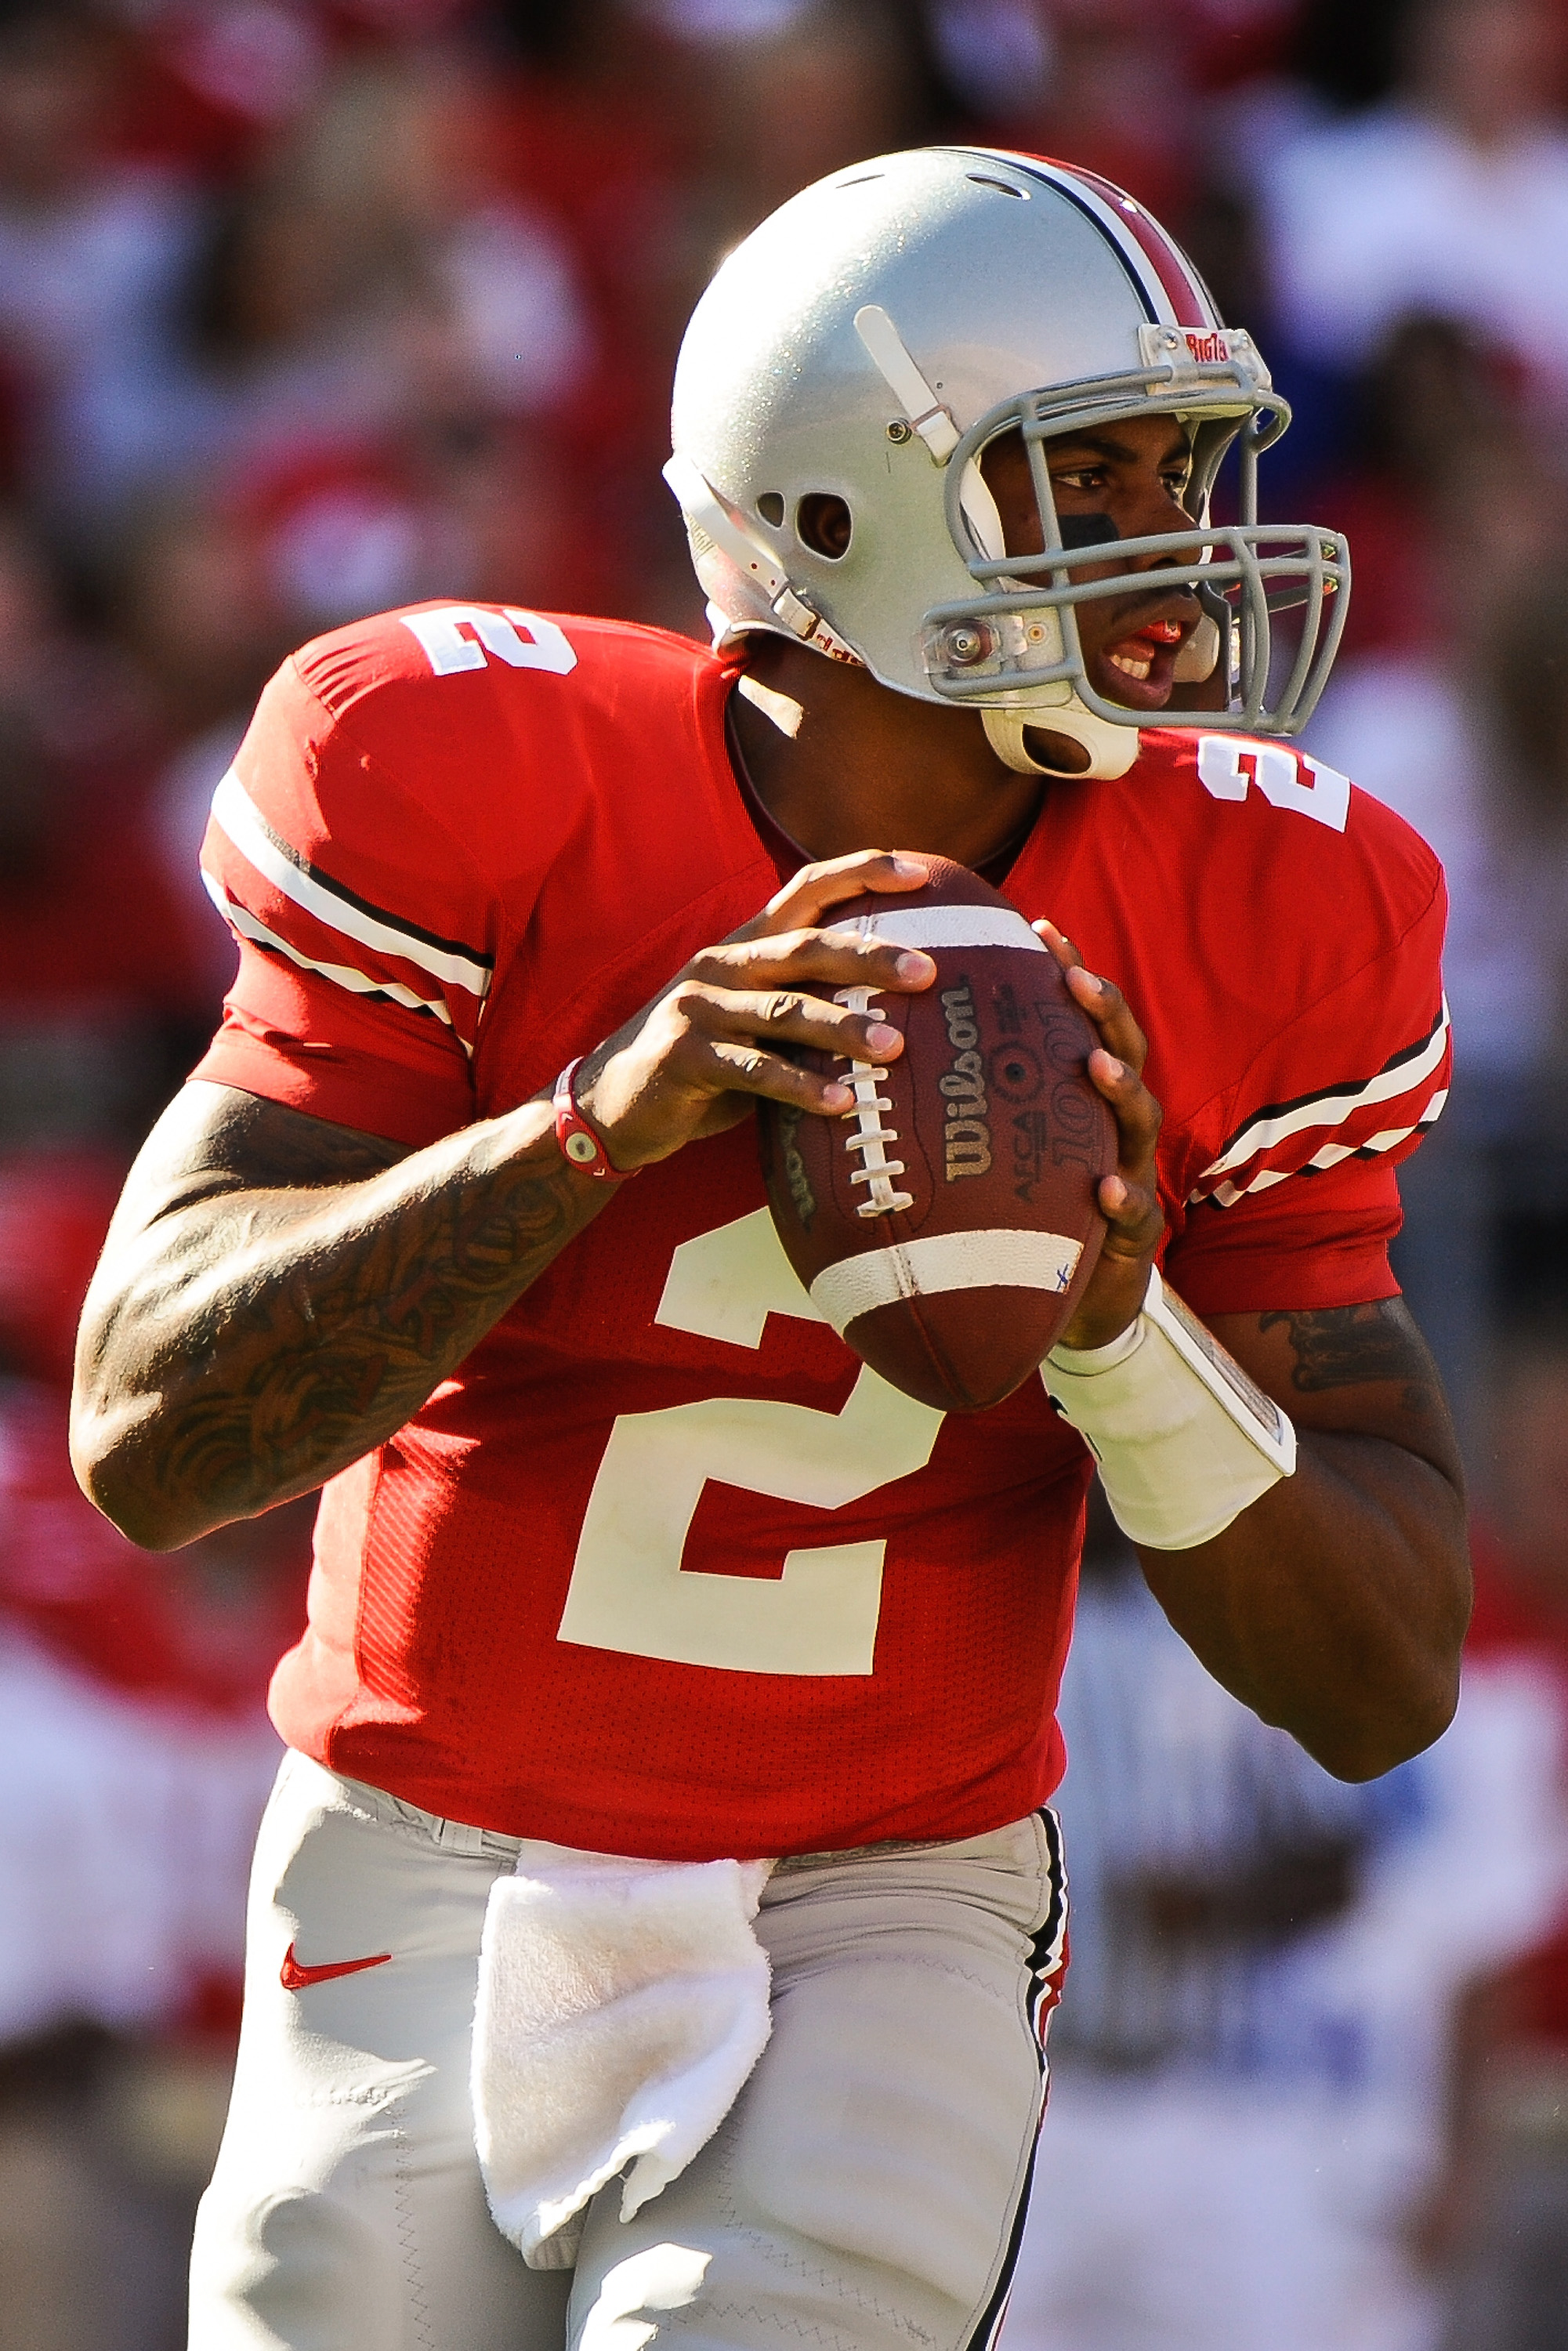 COLUMBUS, OH - SEPTEMBER 25:  Terrelle Pryor #2 of the Ohio State Buckeyes drops back to pass against the Eastern Michigan Eagles at Ohio Stadium on September 25, 2010 in Columbus, Ohio.  Ohio State won 73-20. (Photo by Jamie Sabau/Getty Images)